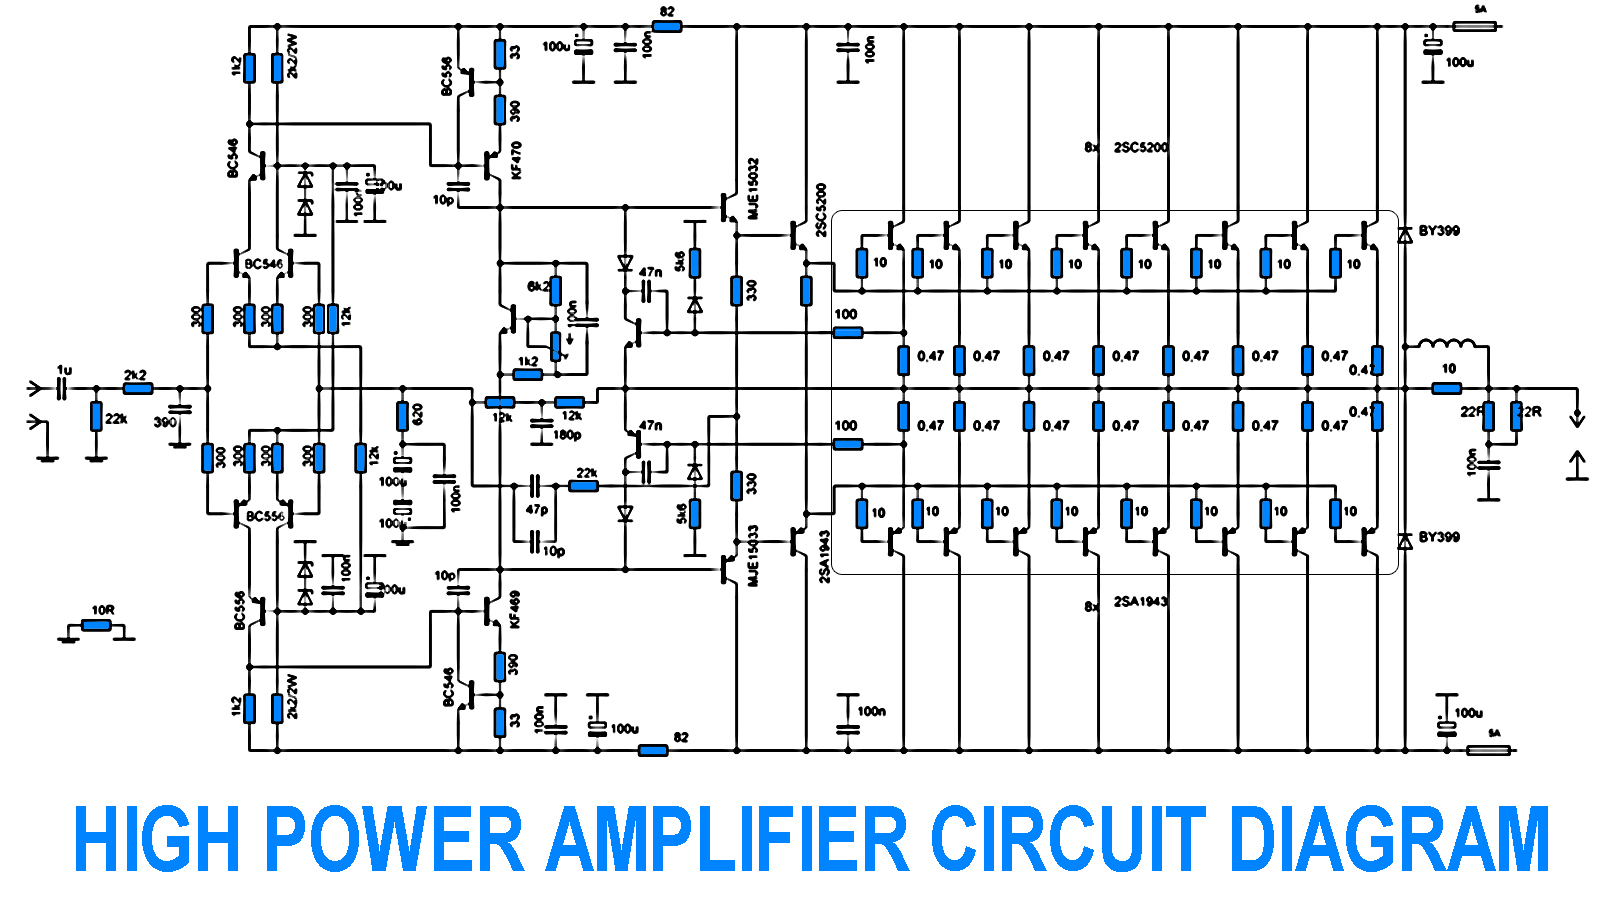 hight resolution of at amp t wiring diagram wiring diagram schematics amp wiring chart at amp t wiring diagram